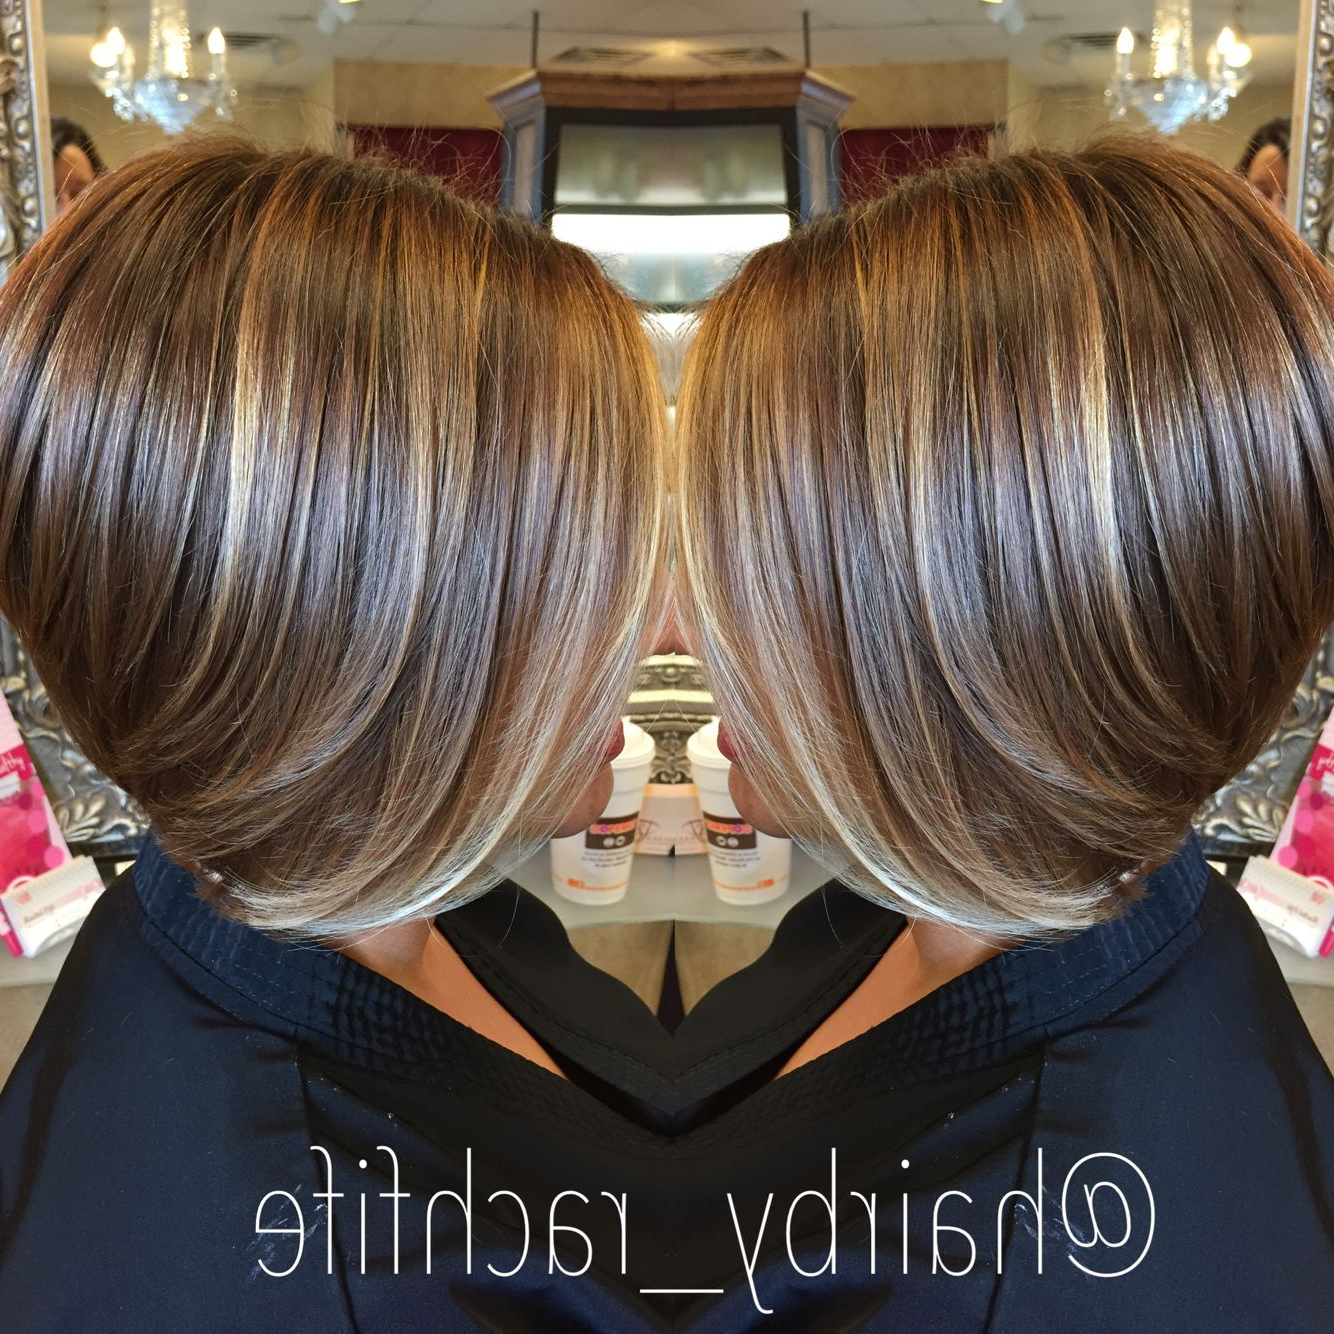 Short Bob Haircut With Subtle Balayage Highlights (View 18 of 20)